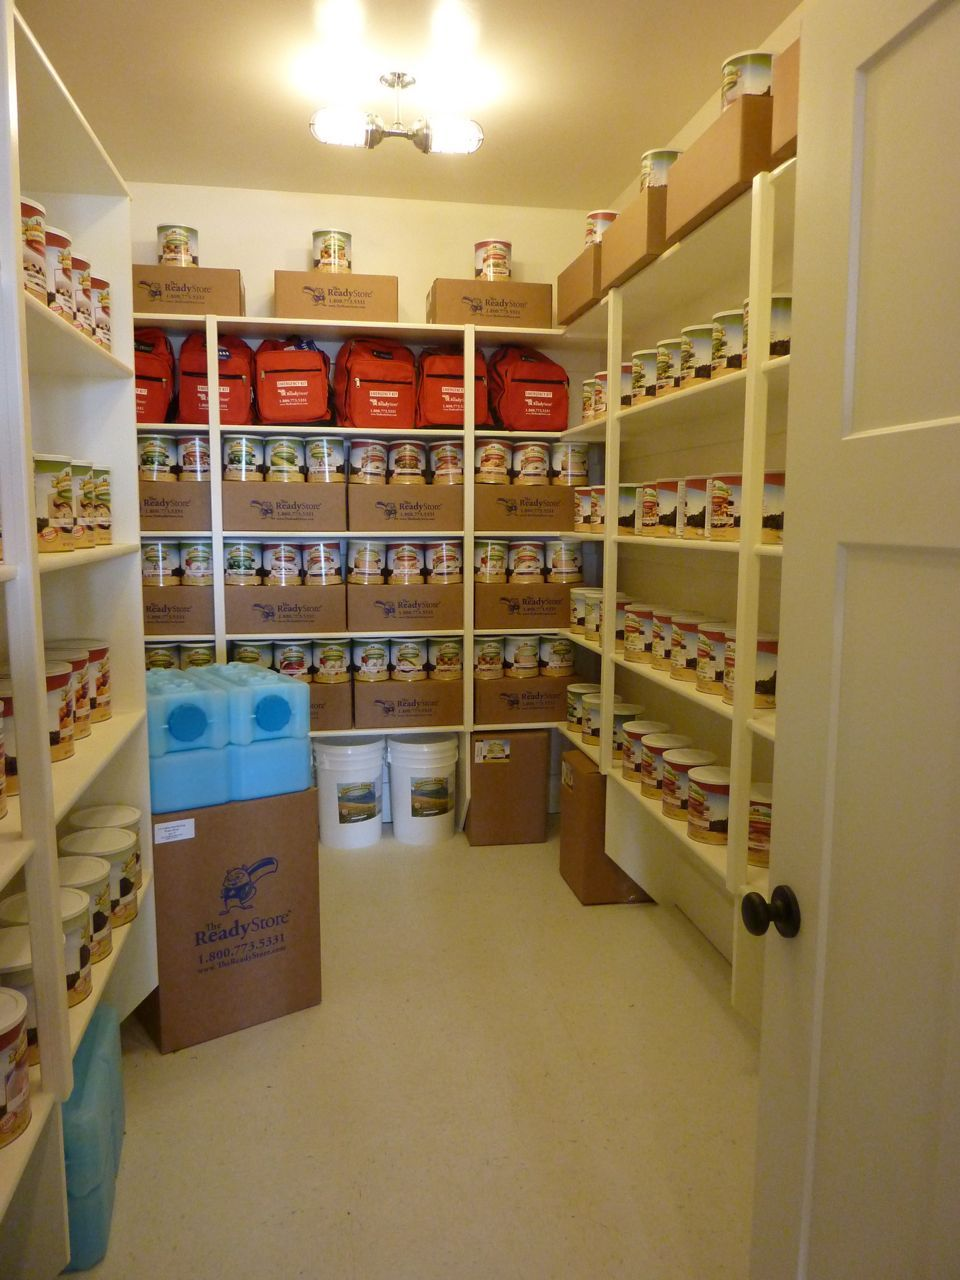 Stock Room Design: Storage Room- Oh How I Want A Room Like This!!